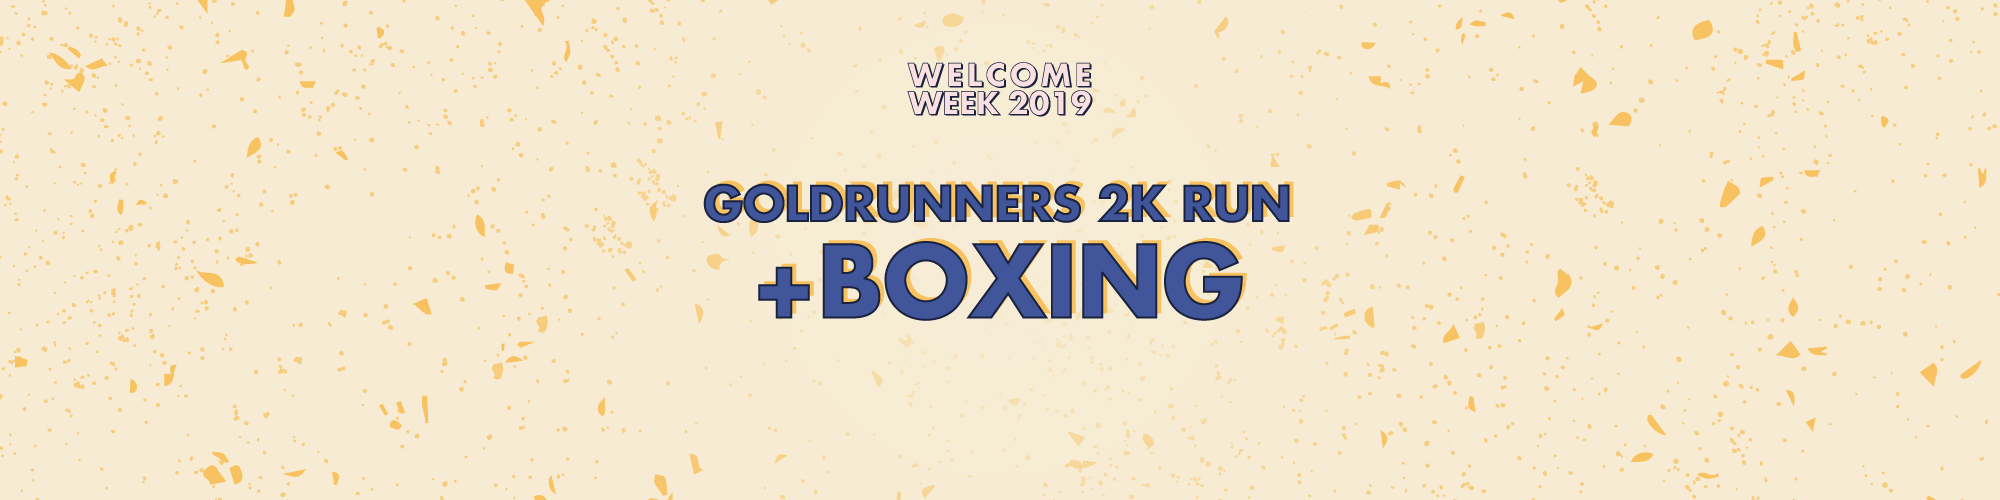 GoldRunners 2k Run + Boxing